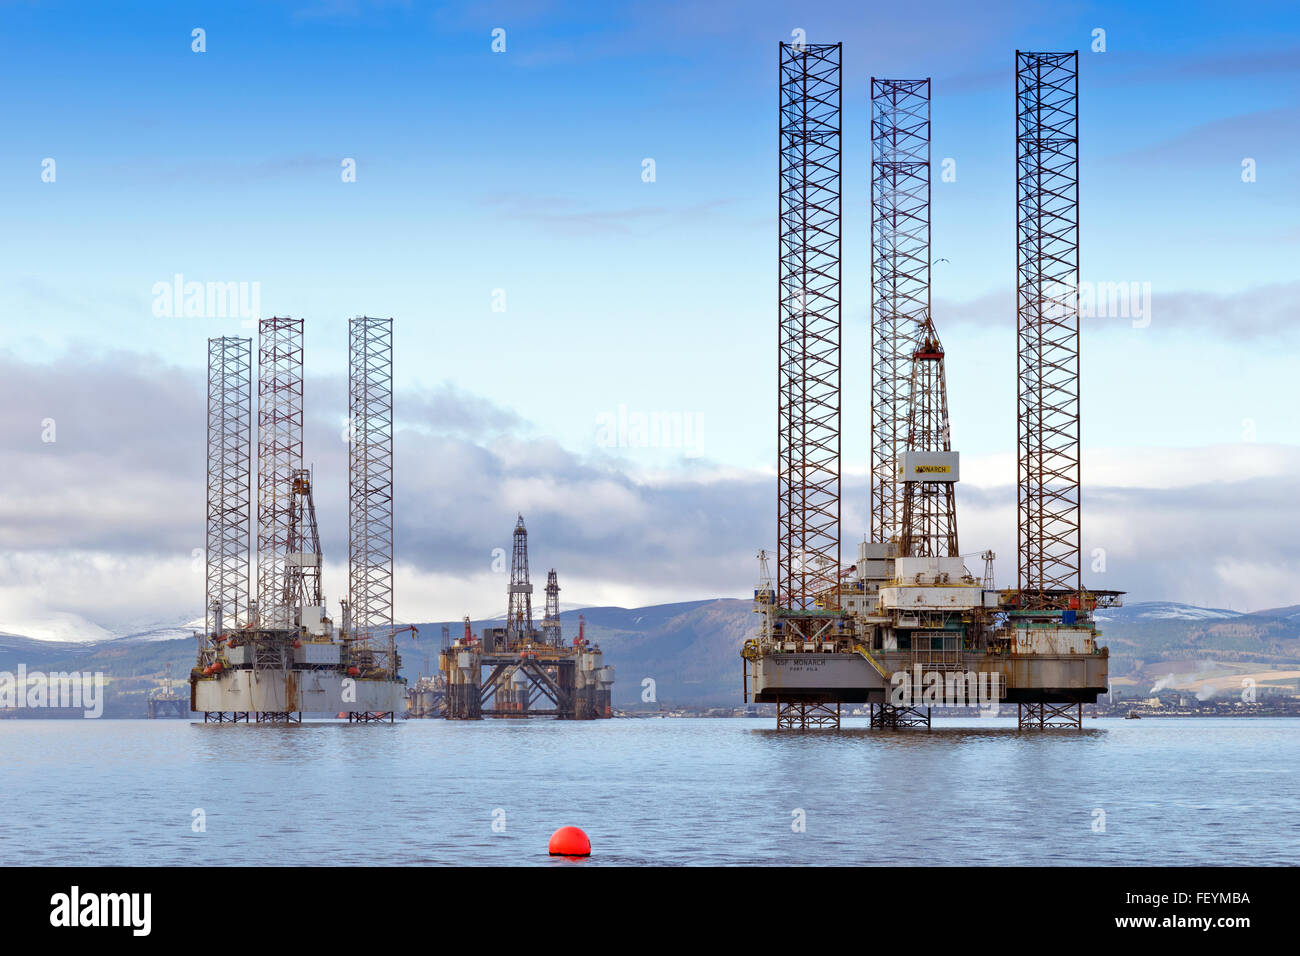 NORTH SEA OIL RIGS GALAXY AND MONARCH ANCHORED IN THE CROMARTY FIRTH UNDERGOING REPAIRS SCOTLAND - Stock Image